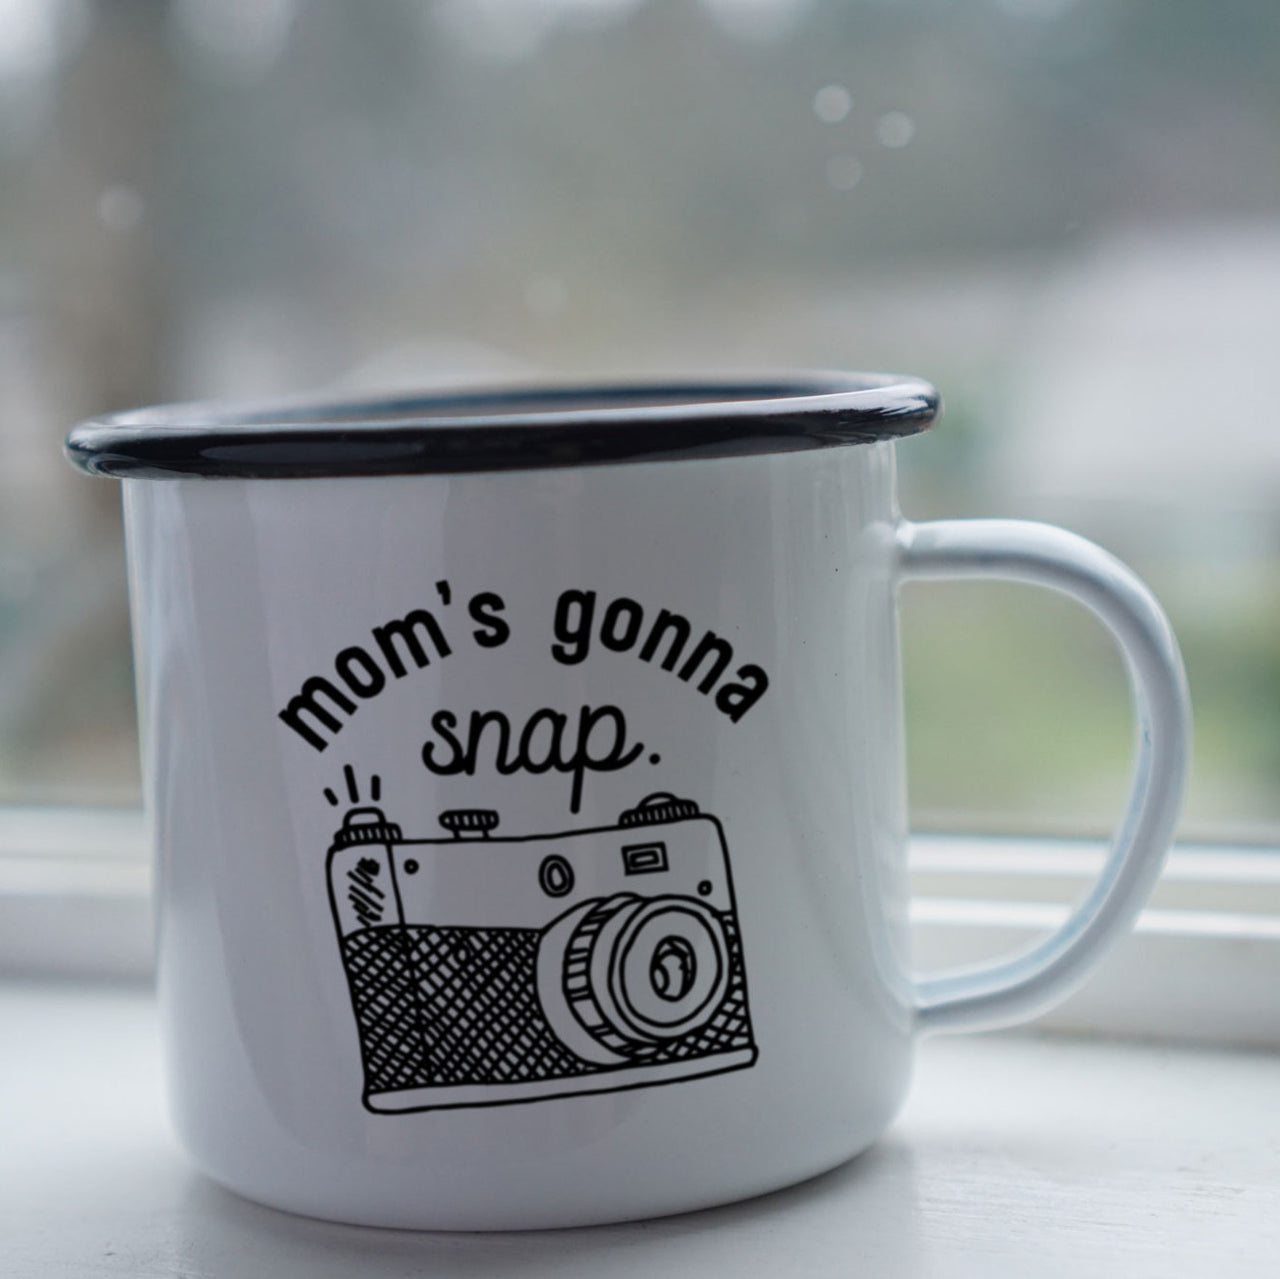 Mom's Gonna Snap: Cute and Funny Mom's Mug for Mother's Day-Enamel Co.